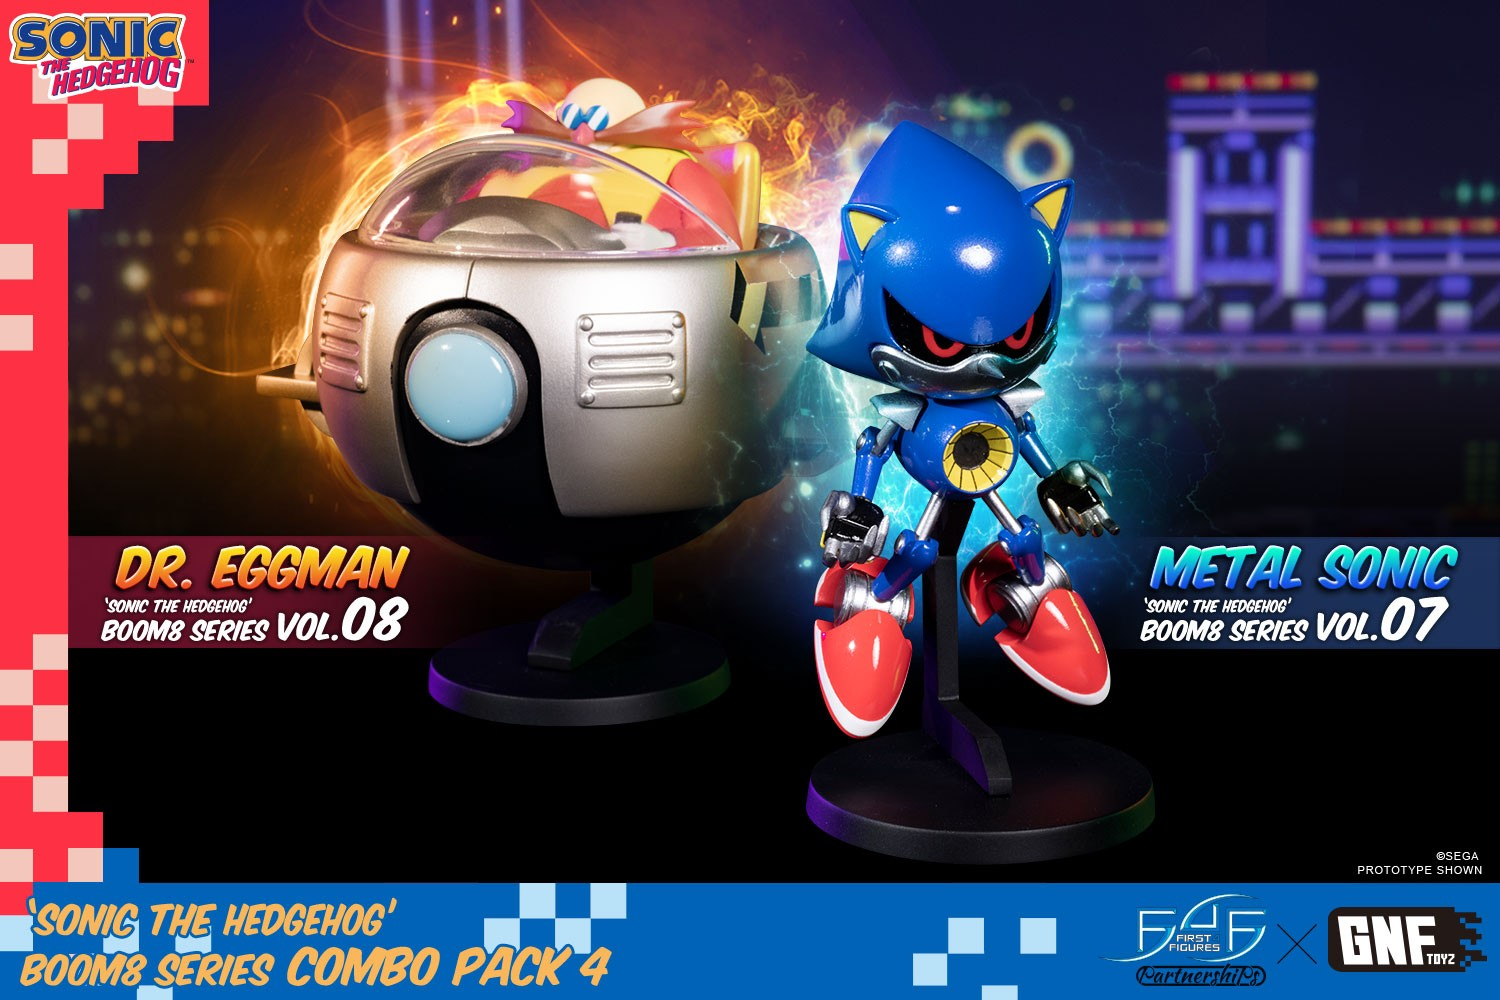 Sonic The Hedgehog Boom8 Series Combo Pack 4